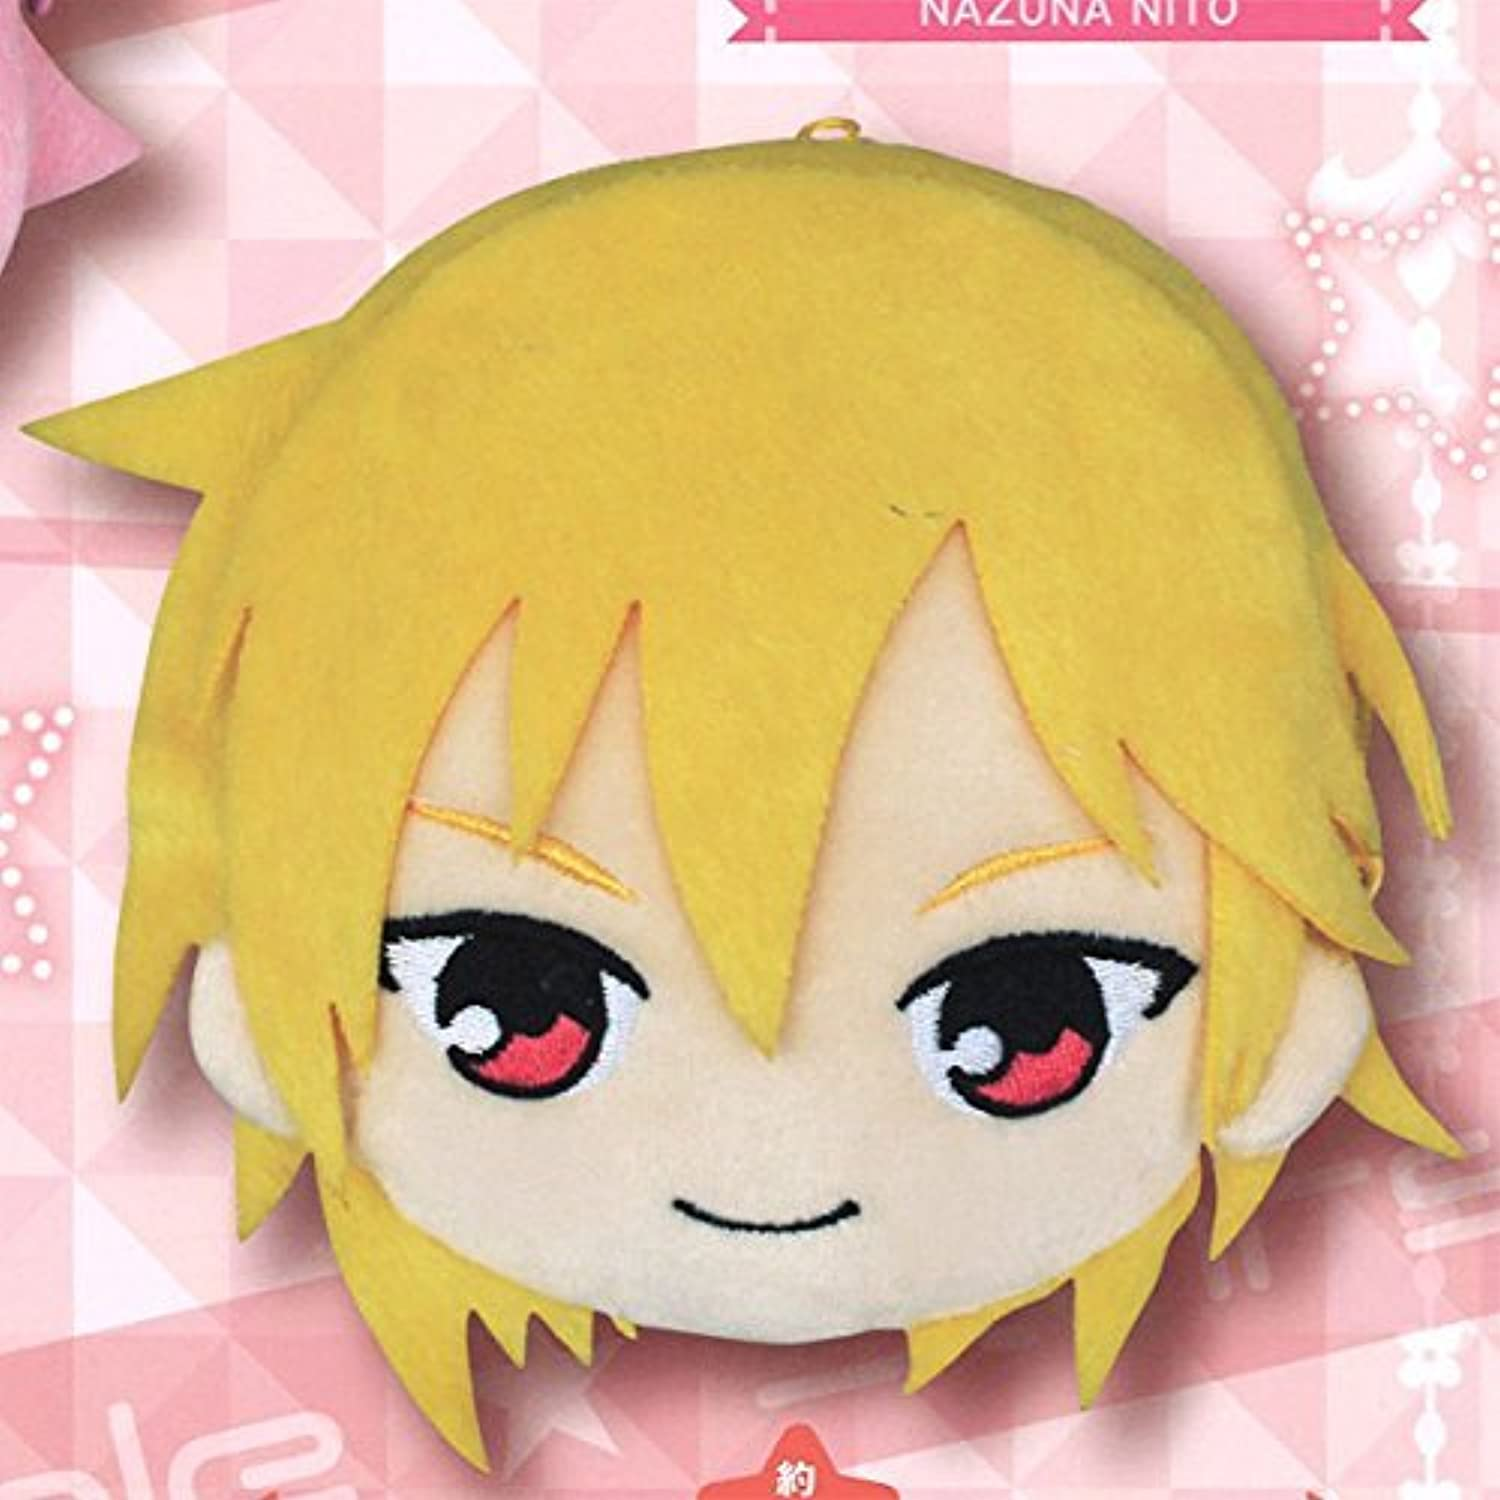 Ensemble Stars  Face pouch 5 Hitoshiusagi shepherd's purse separately (prize)